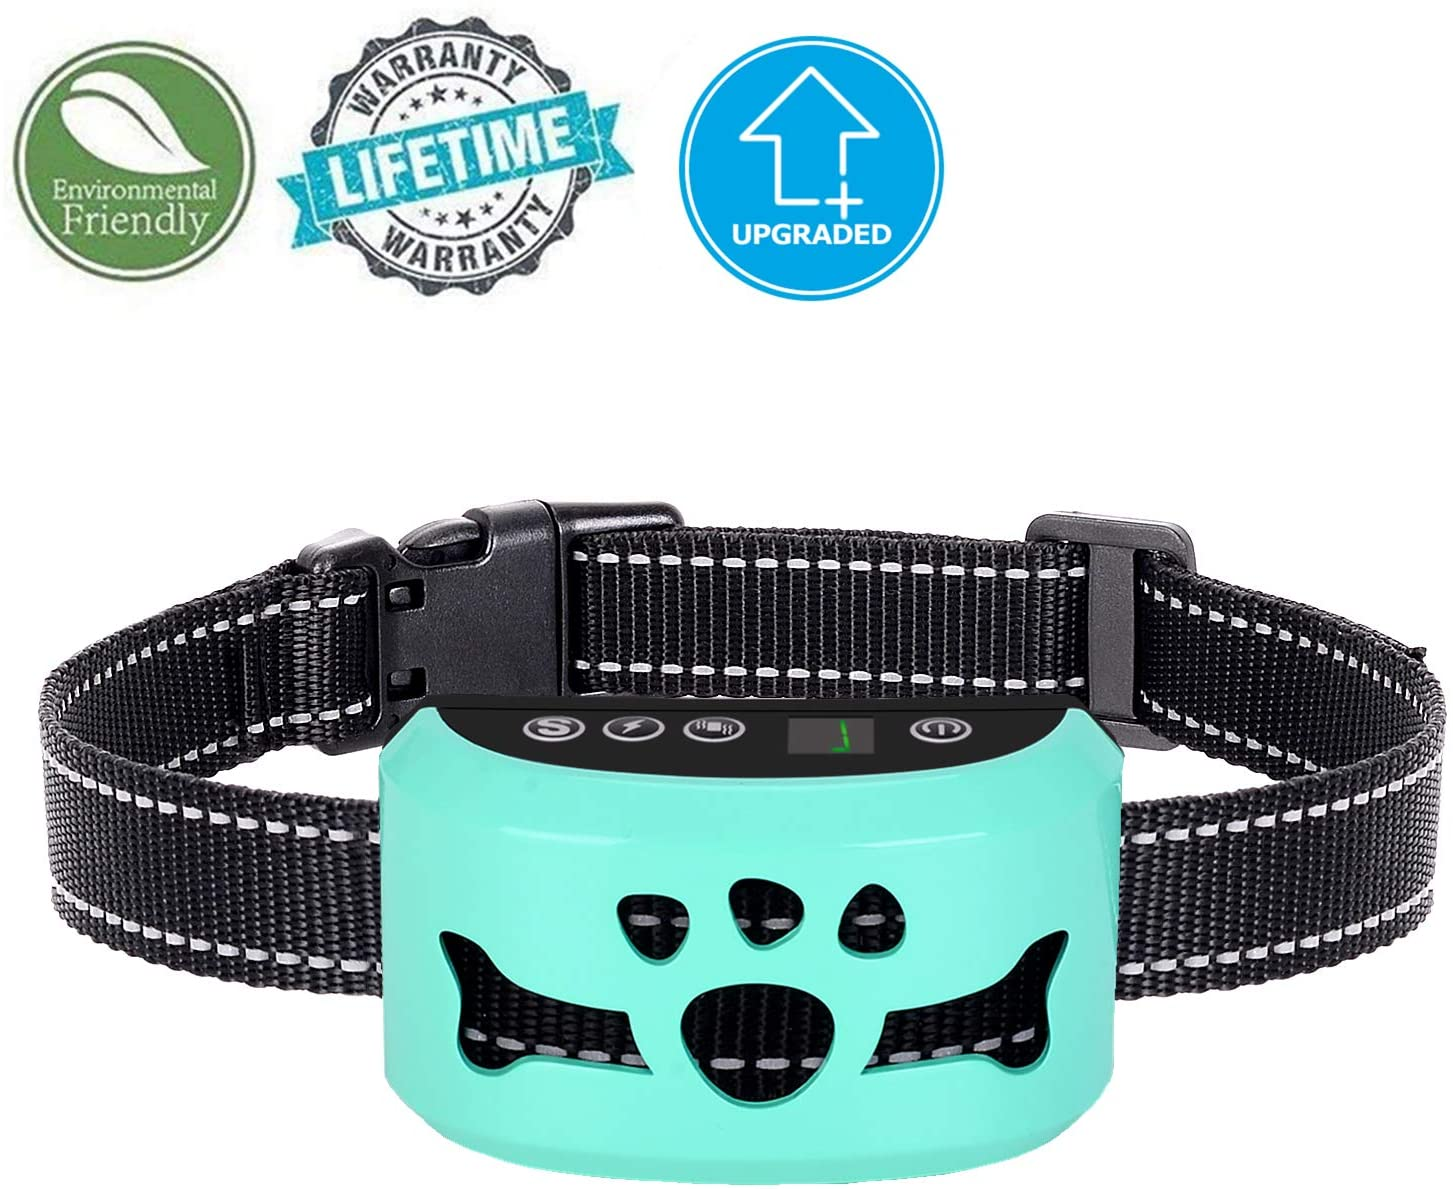 Bark Collar - Humane, No Shock Training Collar - Action Without Remote - Vibration & Sound Care Modes - for Small, Medium, Large Dogs Breeds - No Harm Deterrent Reflective Vibrating Control